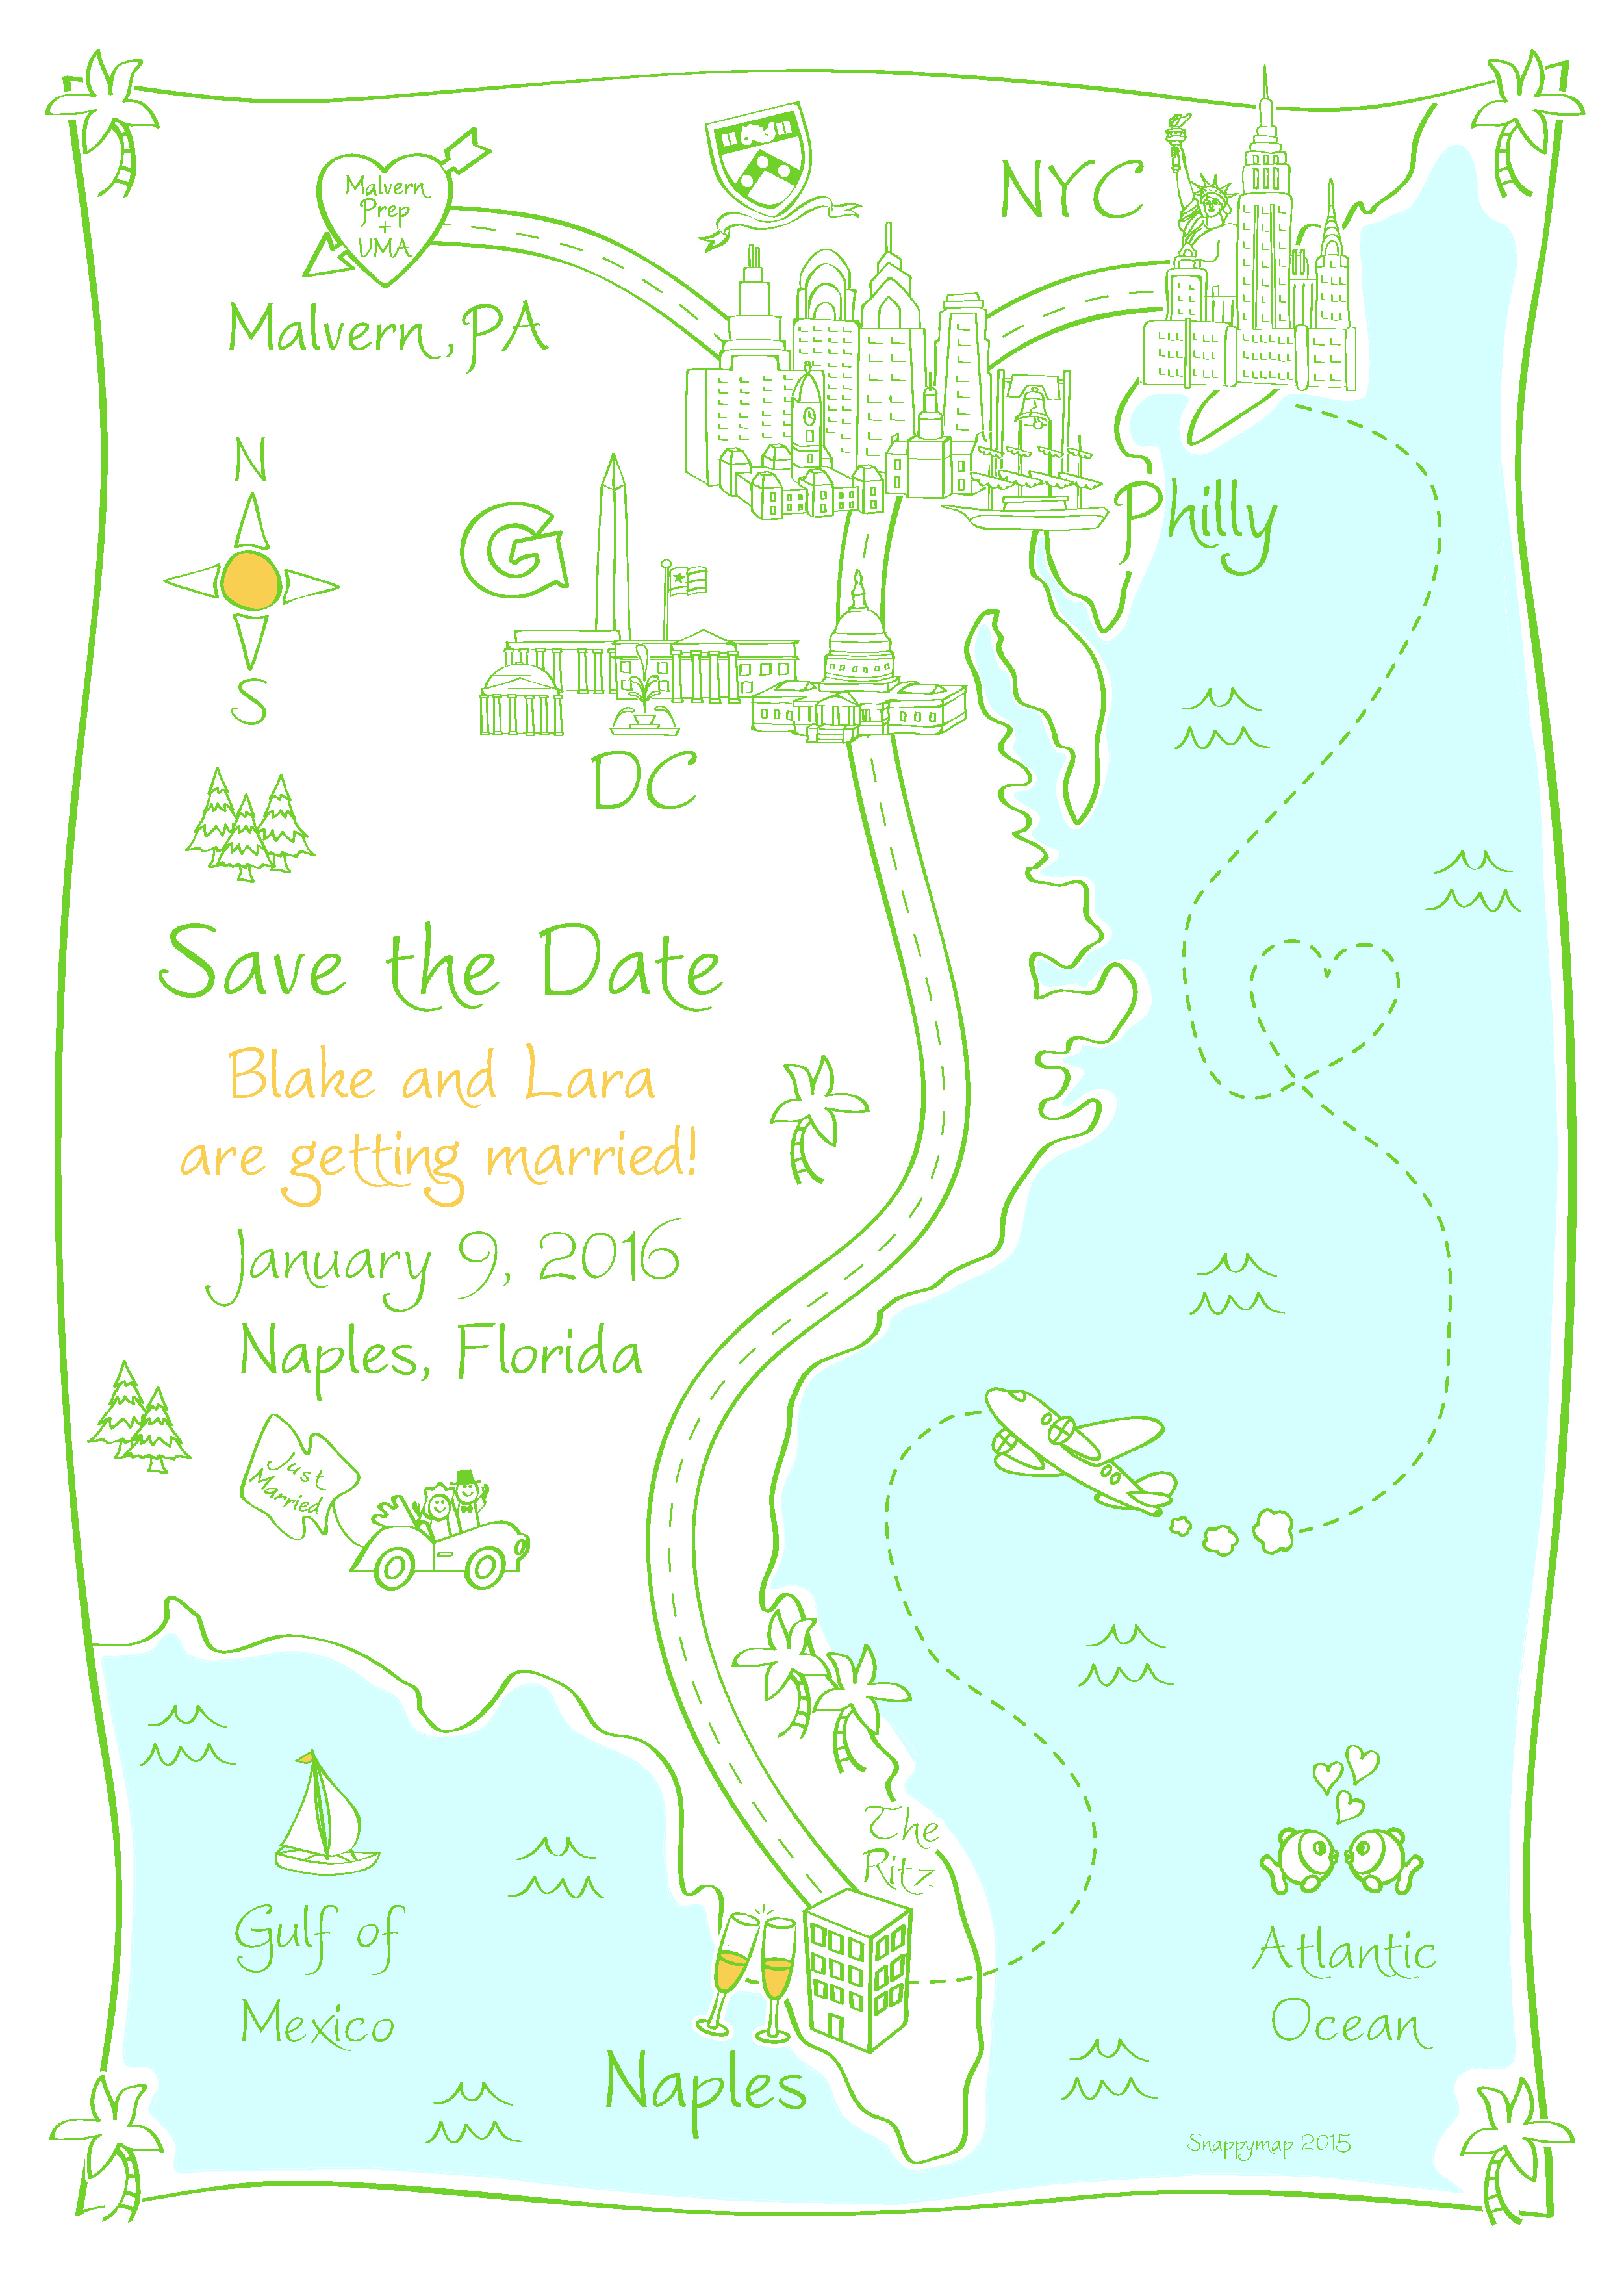 Save the Date map